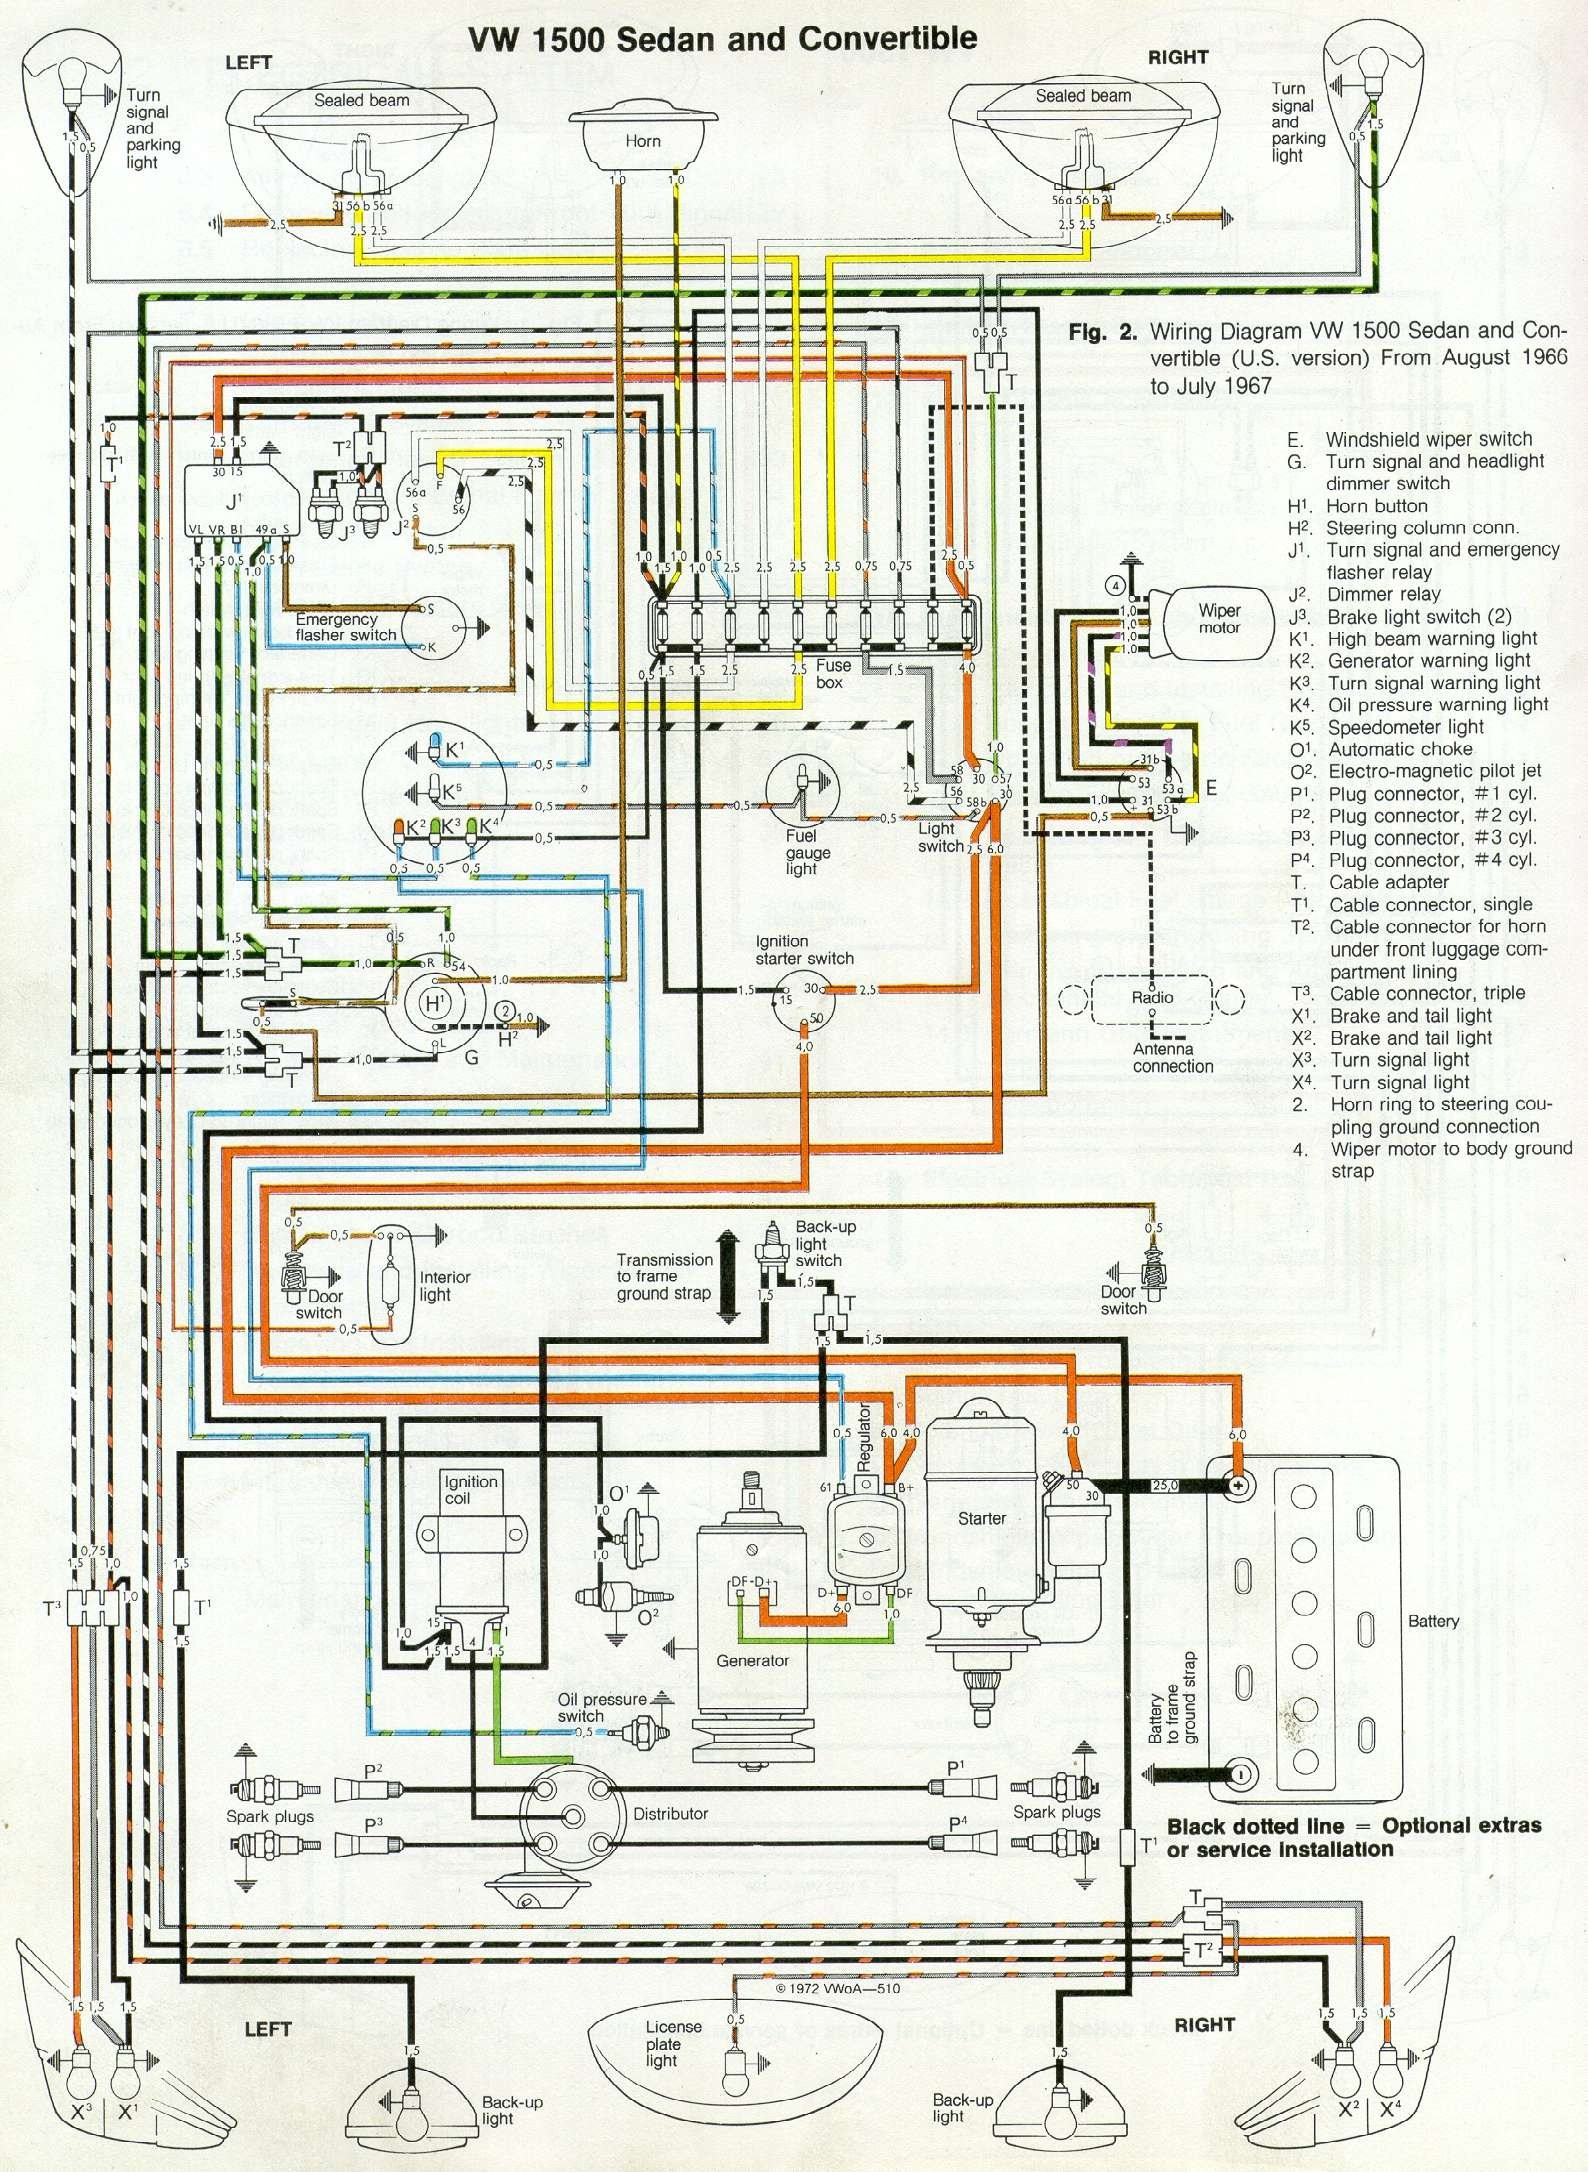 VW Beetle Wiring Digram 67 beetle wiring diagram u s version 1967 vw beetle vw beetle wiring diagram at mr168.co